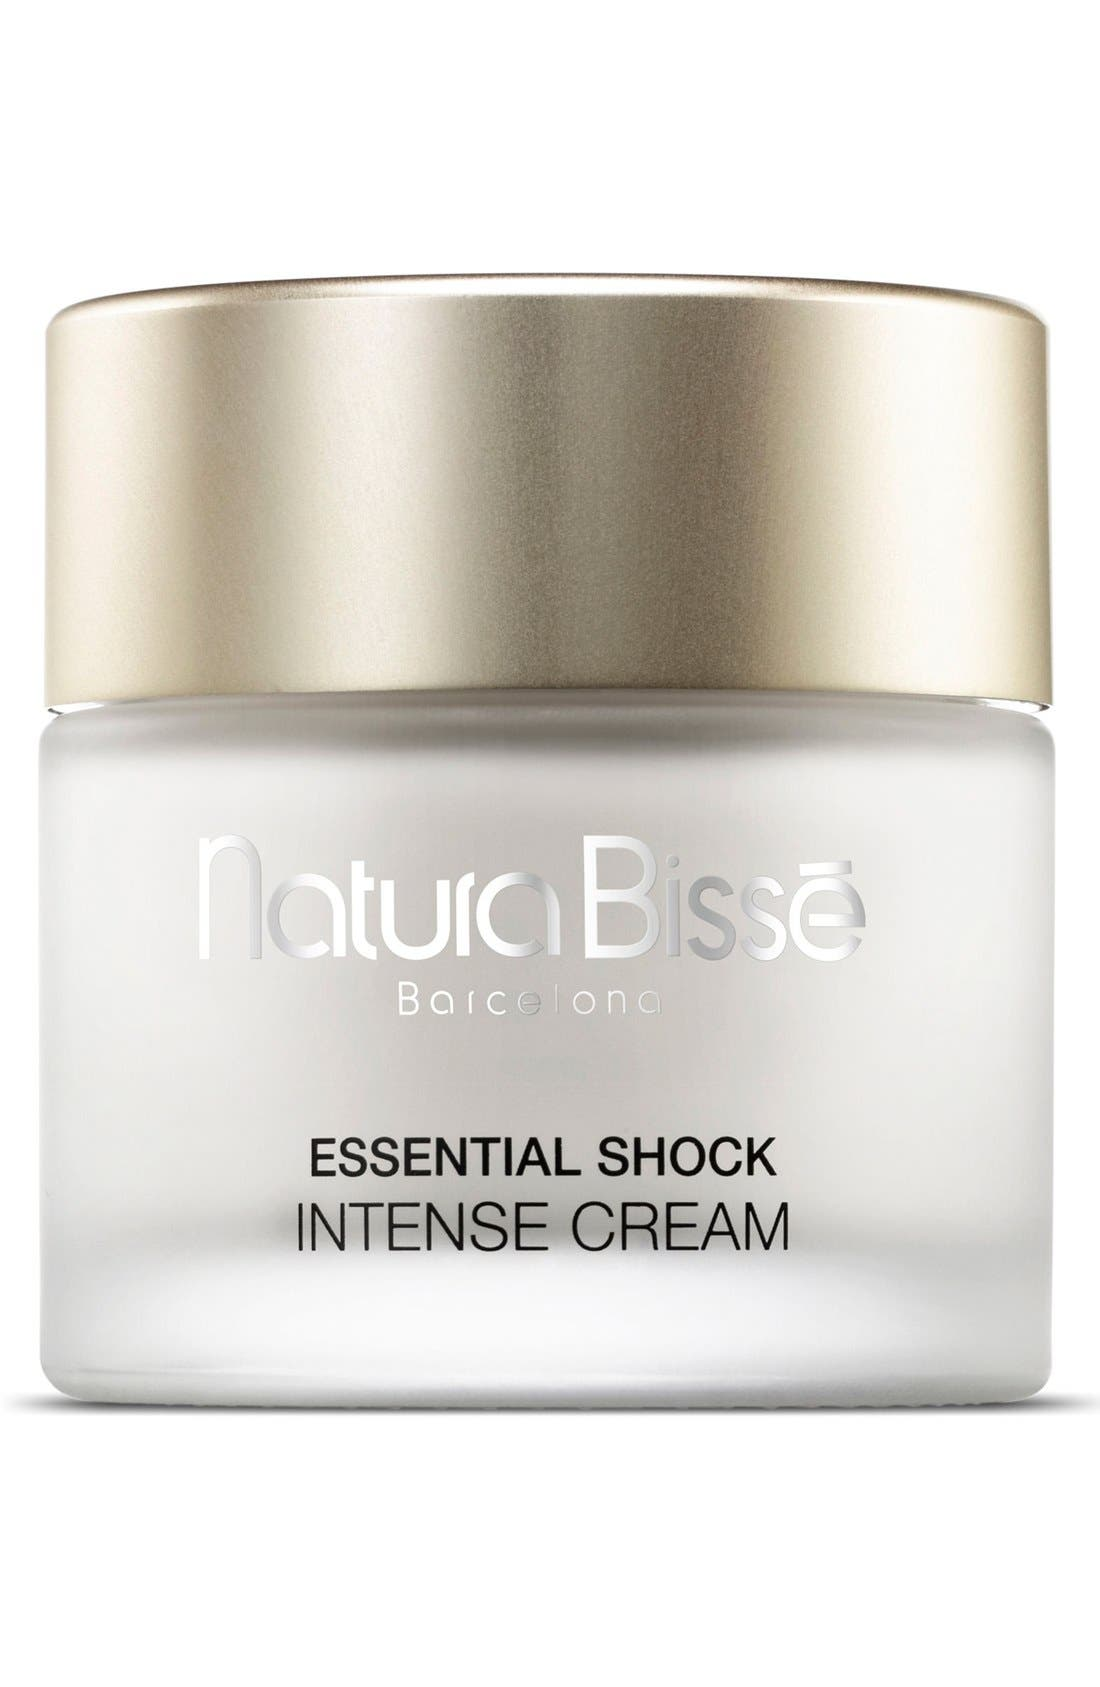 Natura Bissé Essential Shock Intense Cream,                             Main thumbnail 1, color,                             000